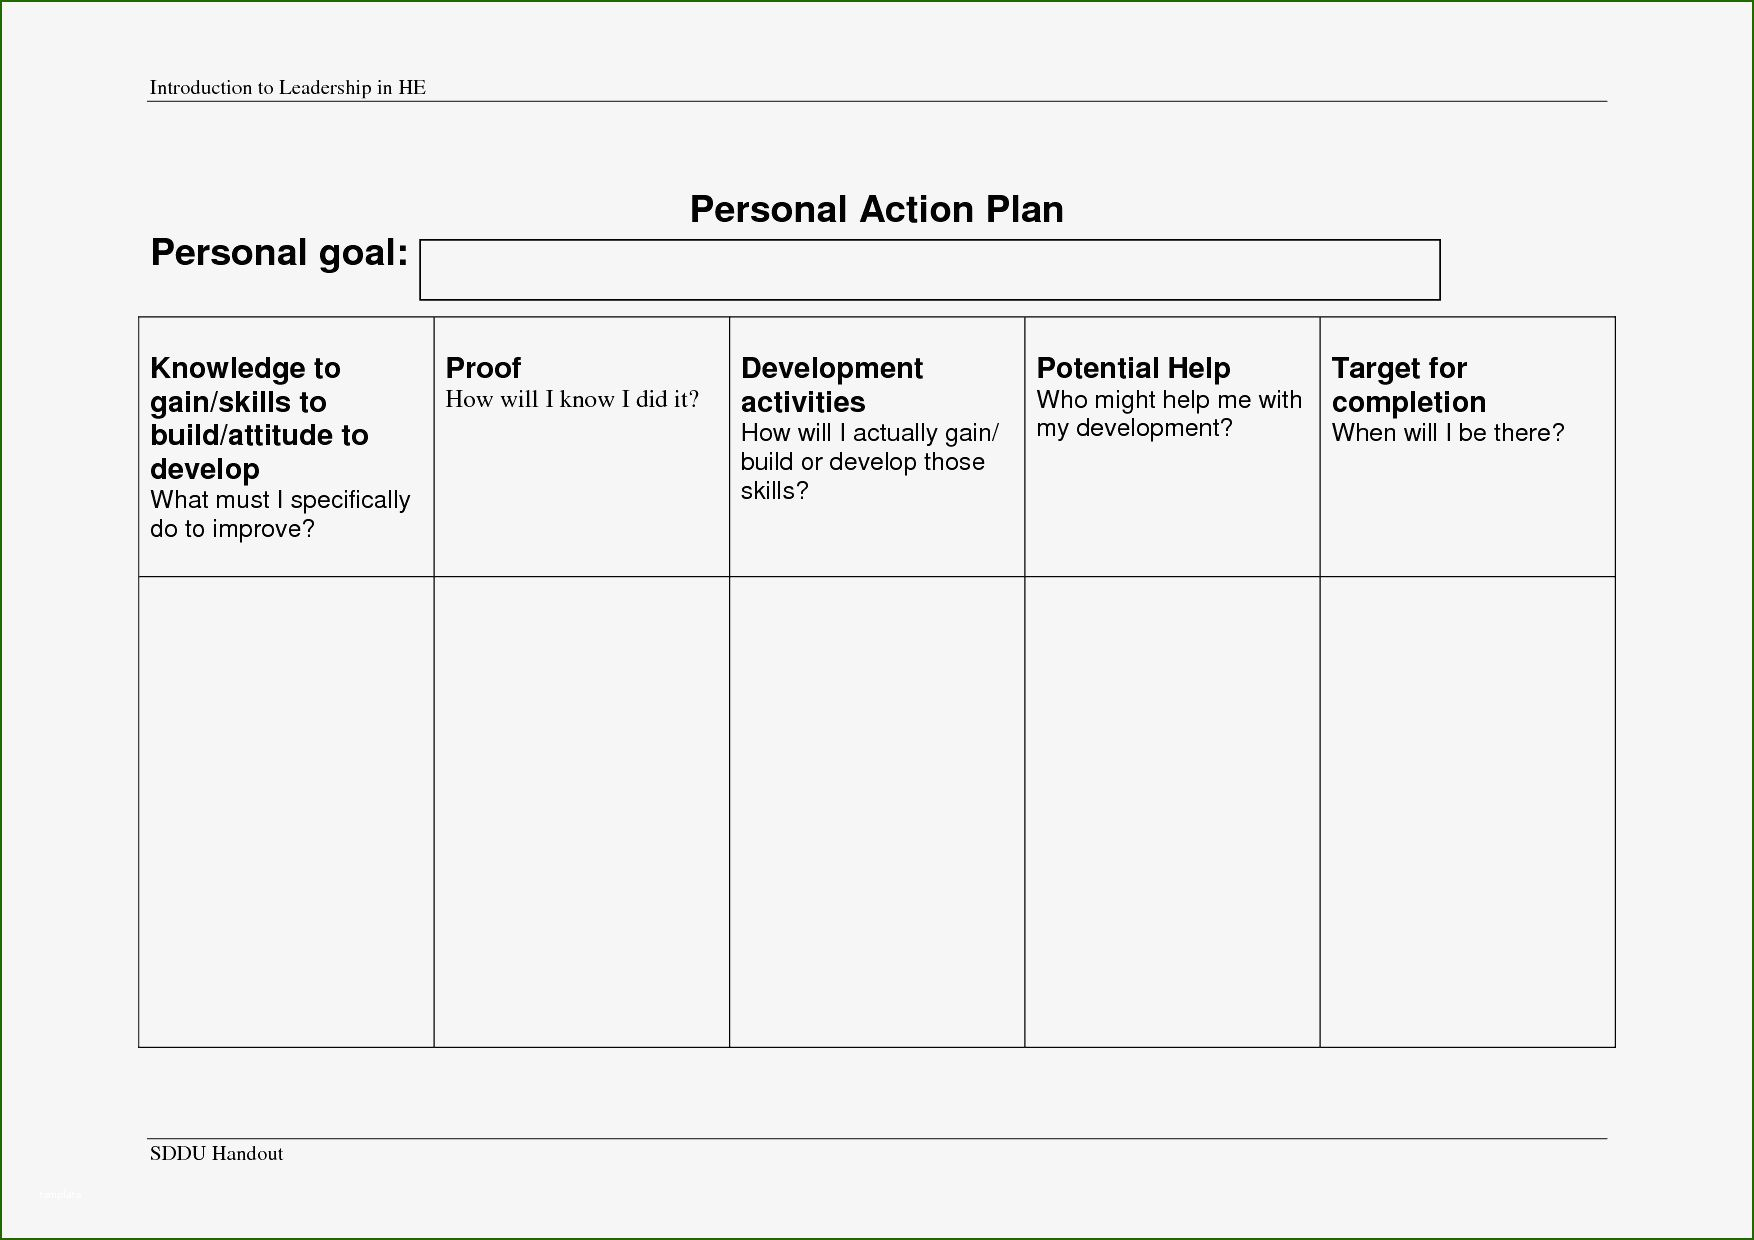 17 Fine Personal Action Plan Template 2020 in 2020